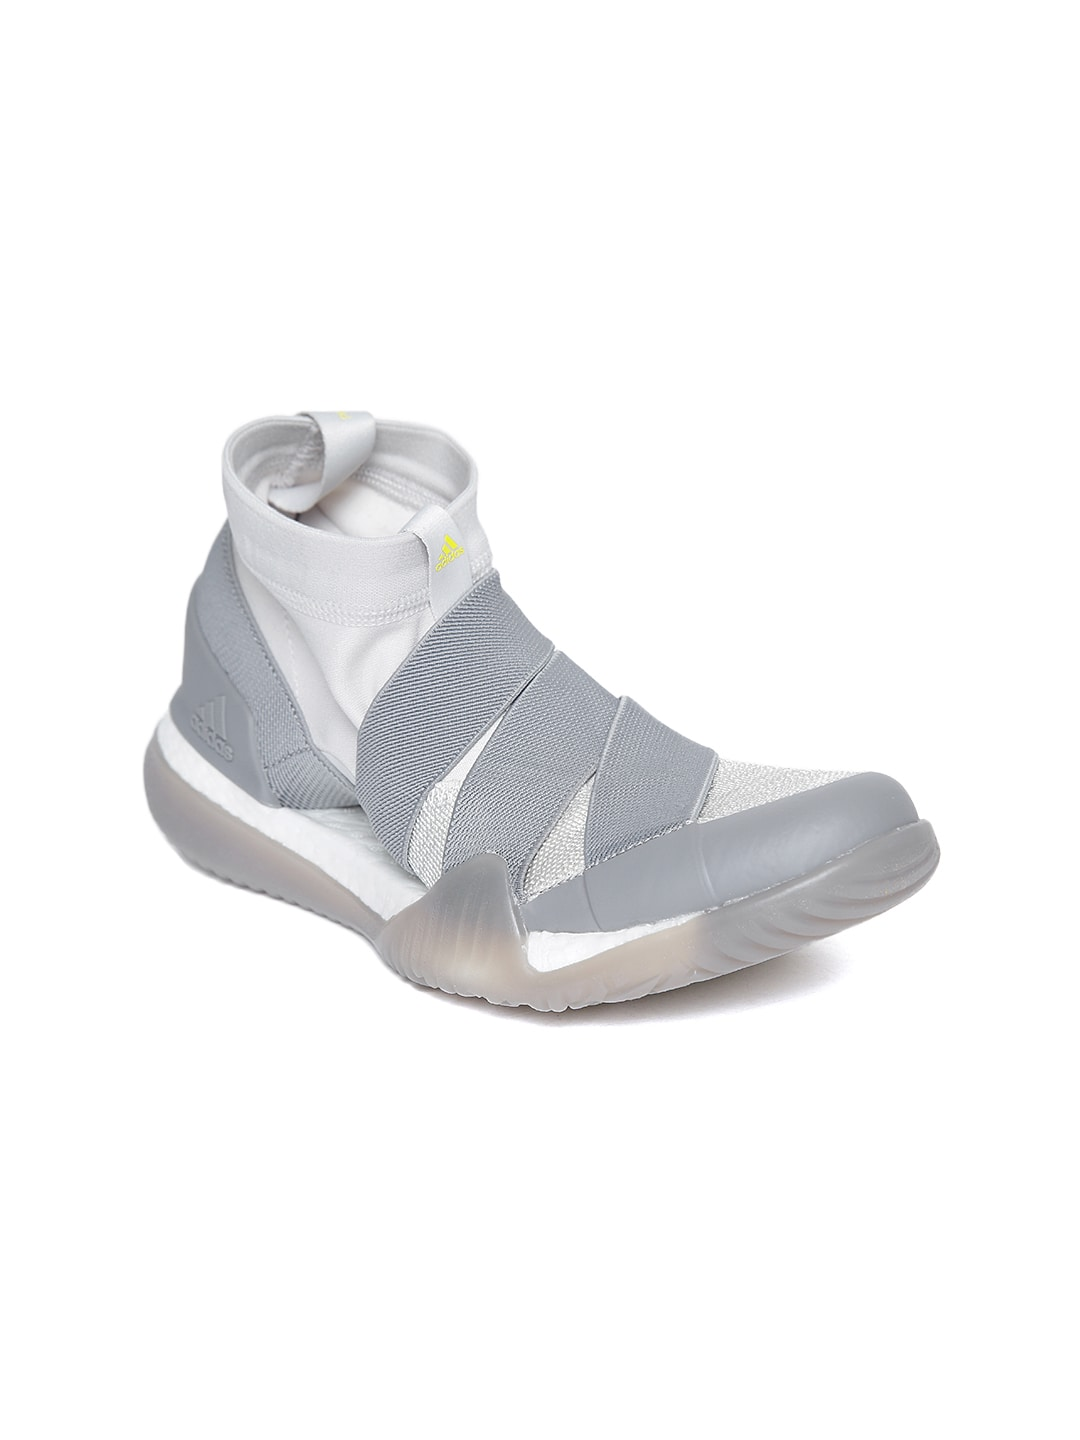 9ffcacf1b Adidas Shoes - Buy Adidas Shoes for Men   Women Online - Myntra